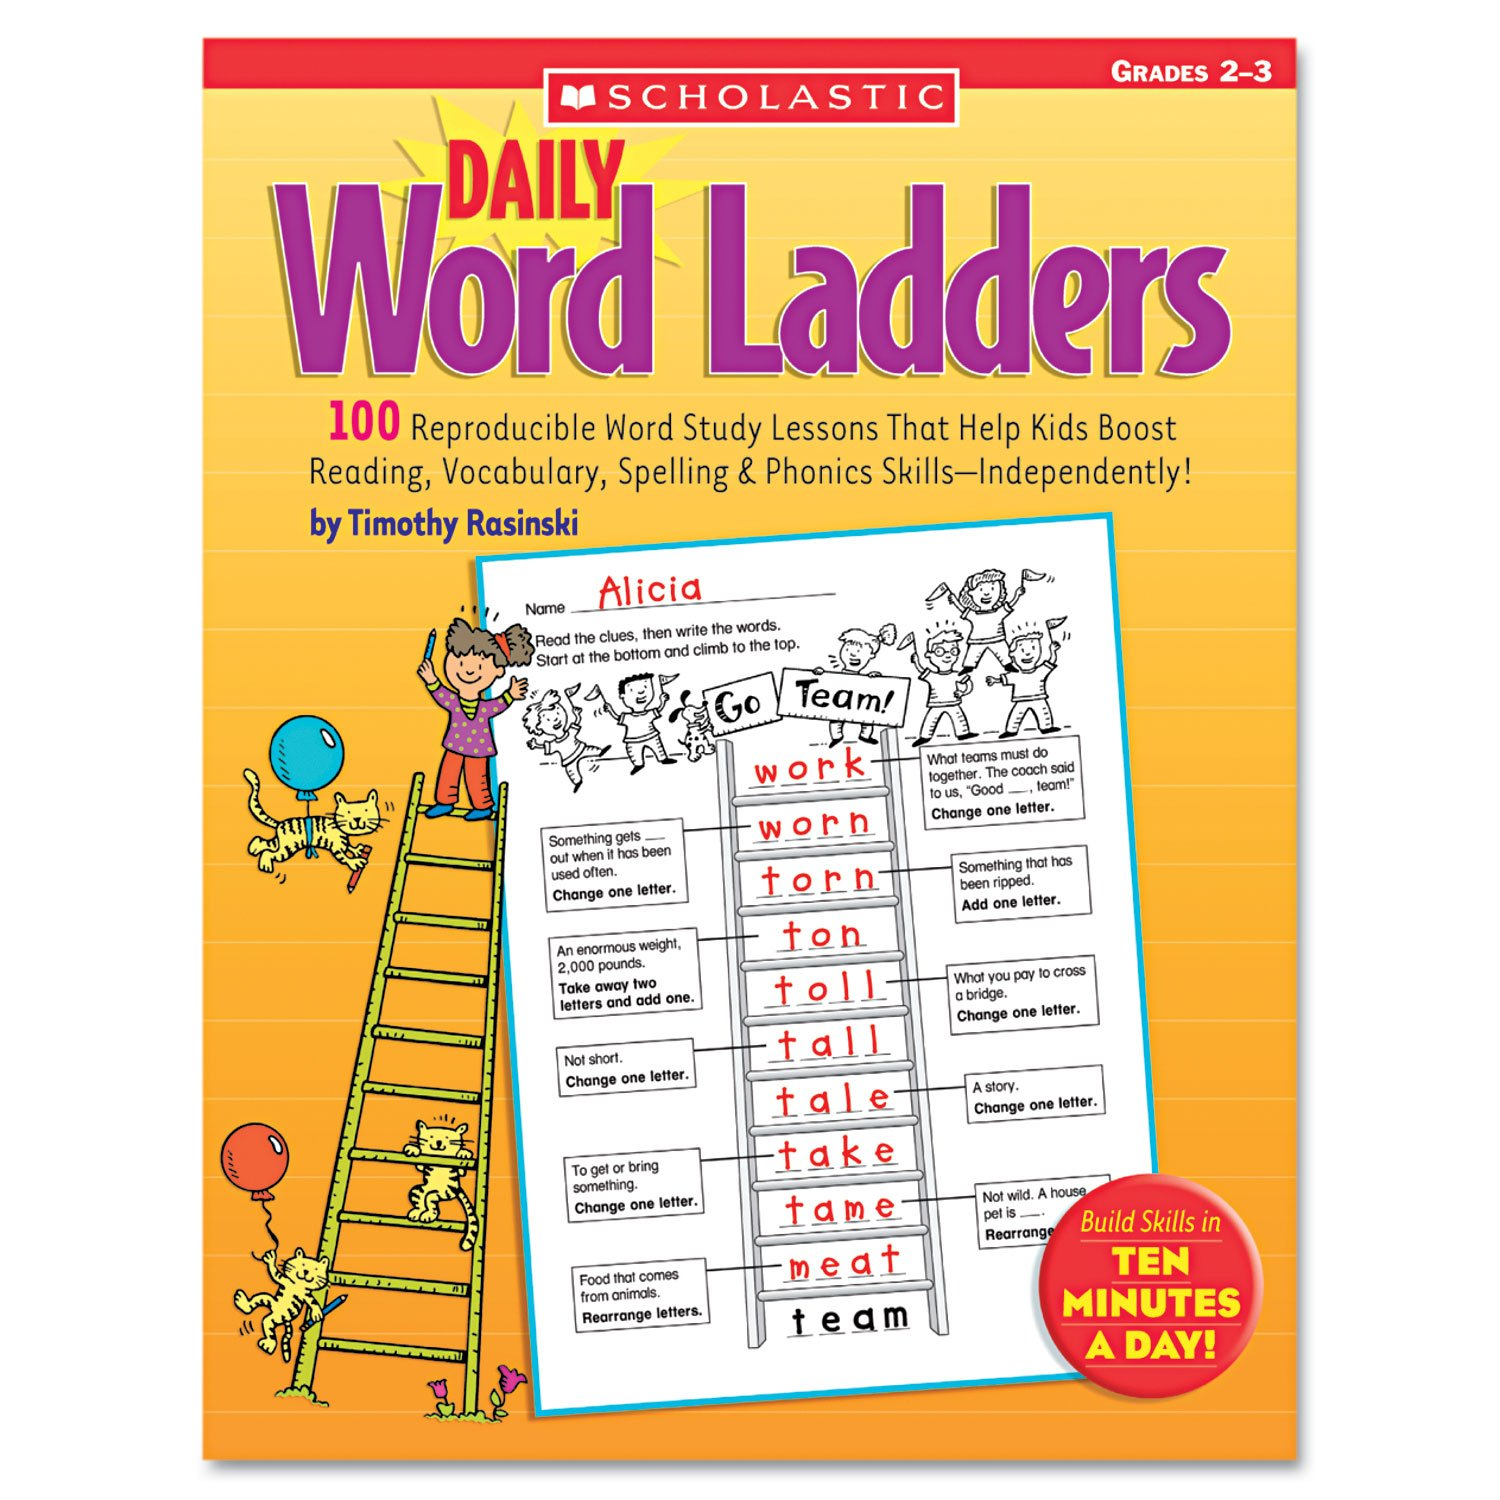 Worksheets Word Ladders Worksheets scholastic daily word ladders grades 2 3 0439513839 amazon co uk office products